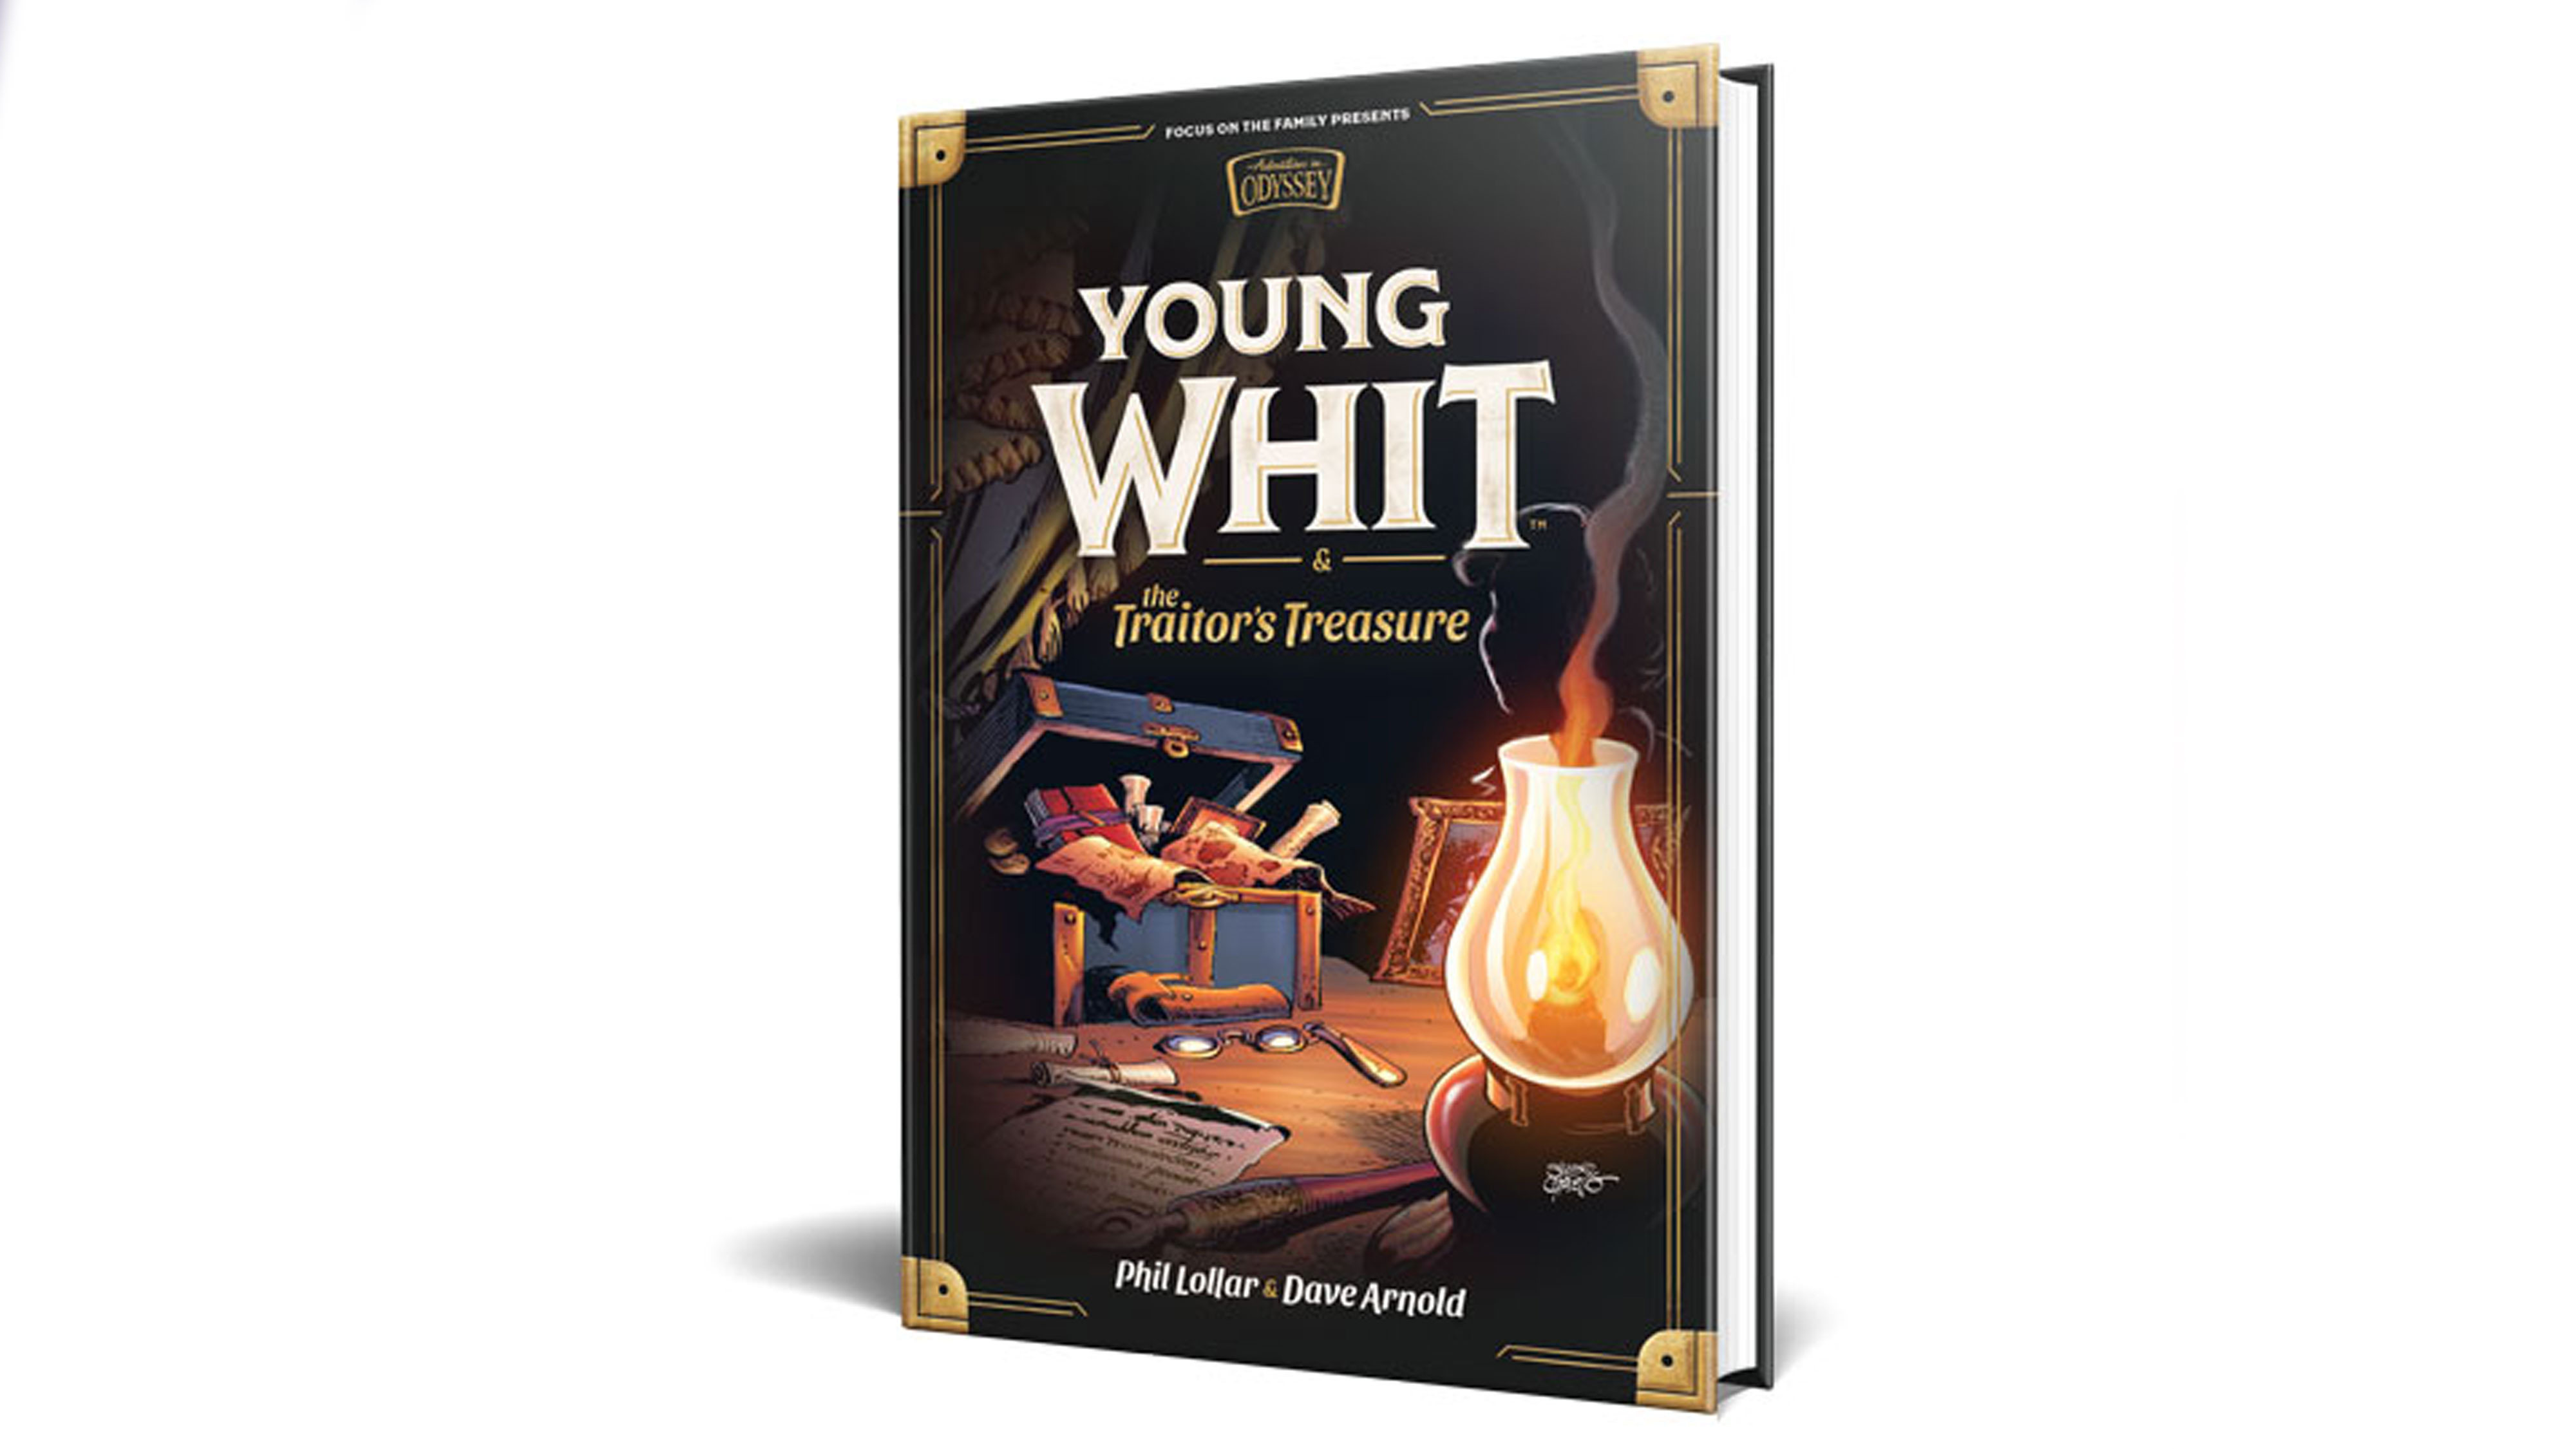 Be Adventurous with Adventures in Odyssey